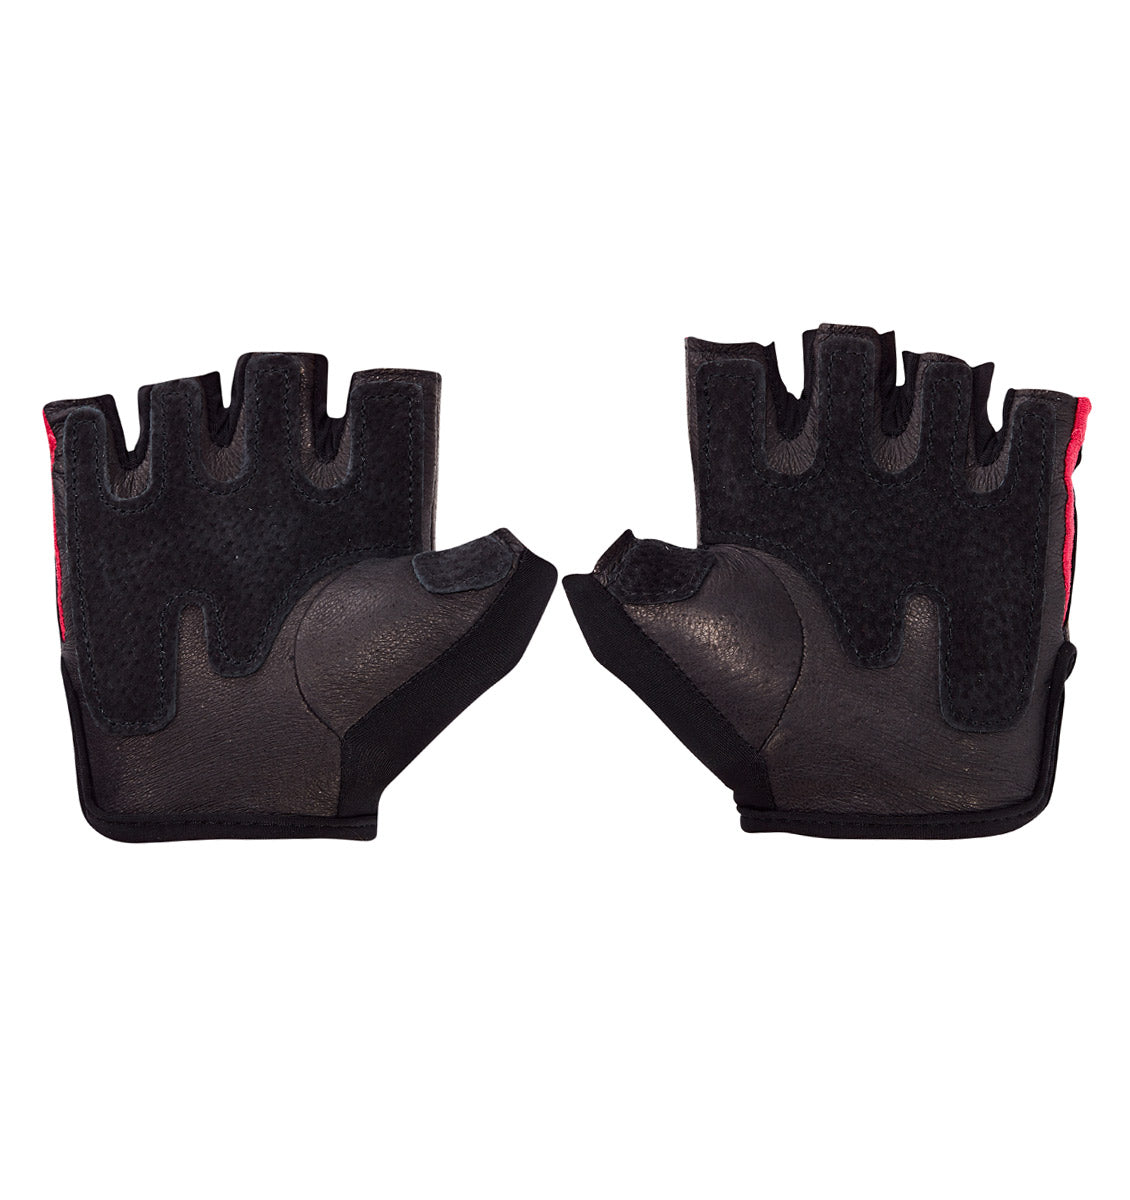 0149 Harbinger Pro Womens Gym Gloves Pink Pair Palm